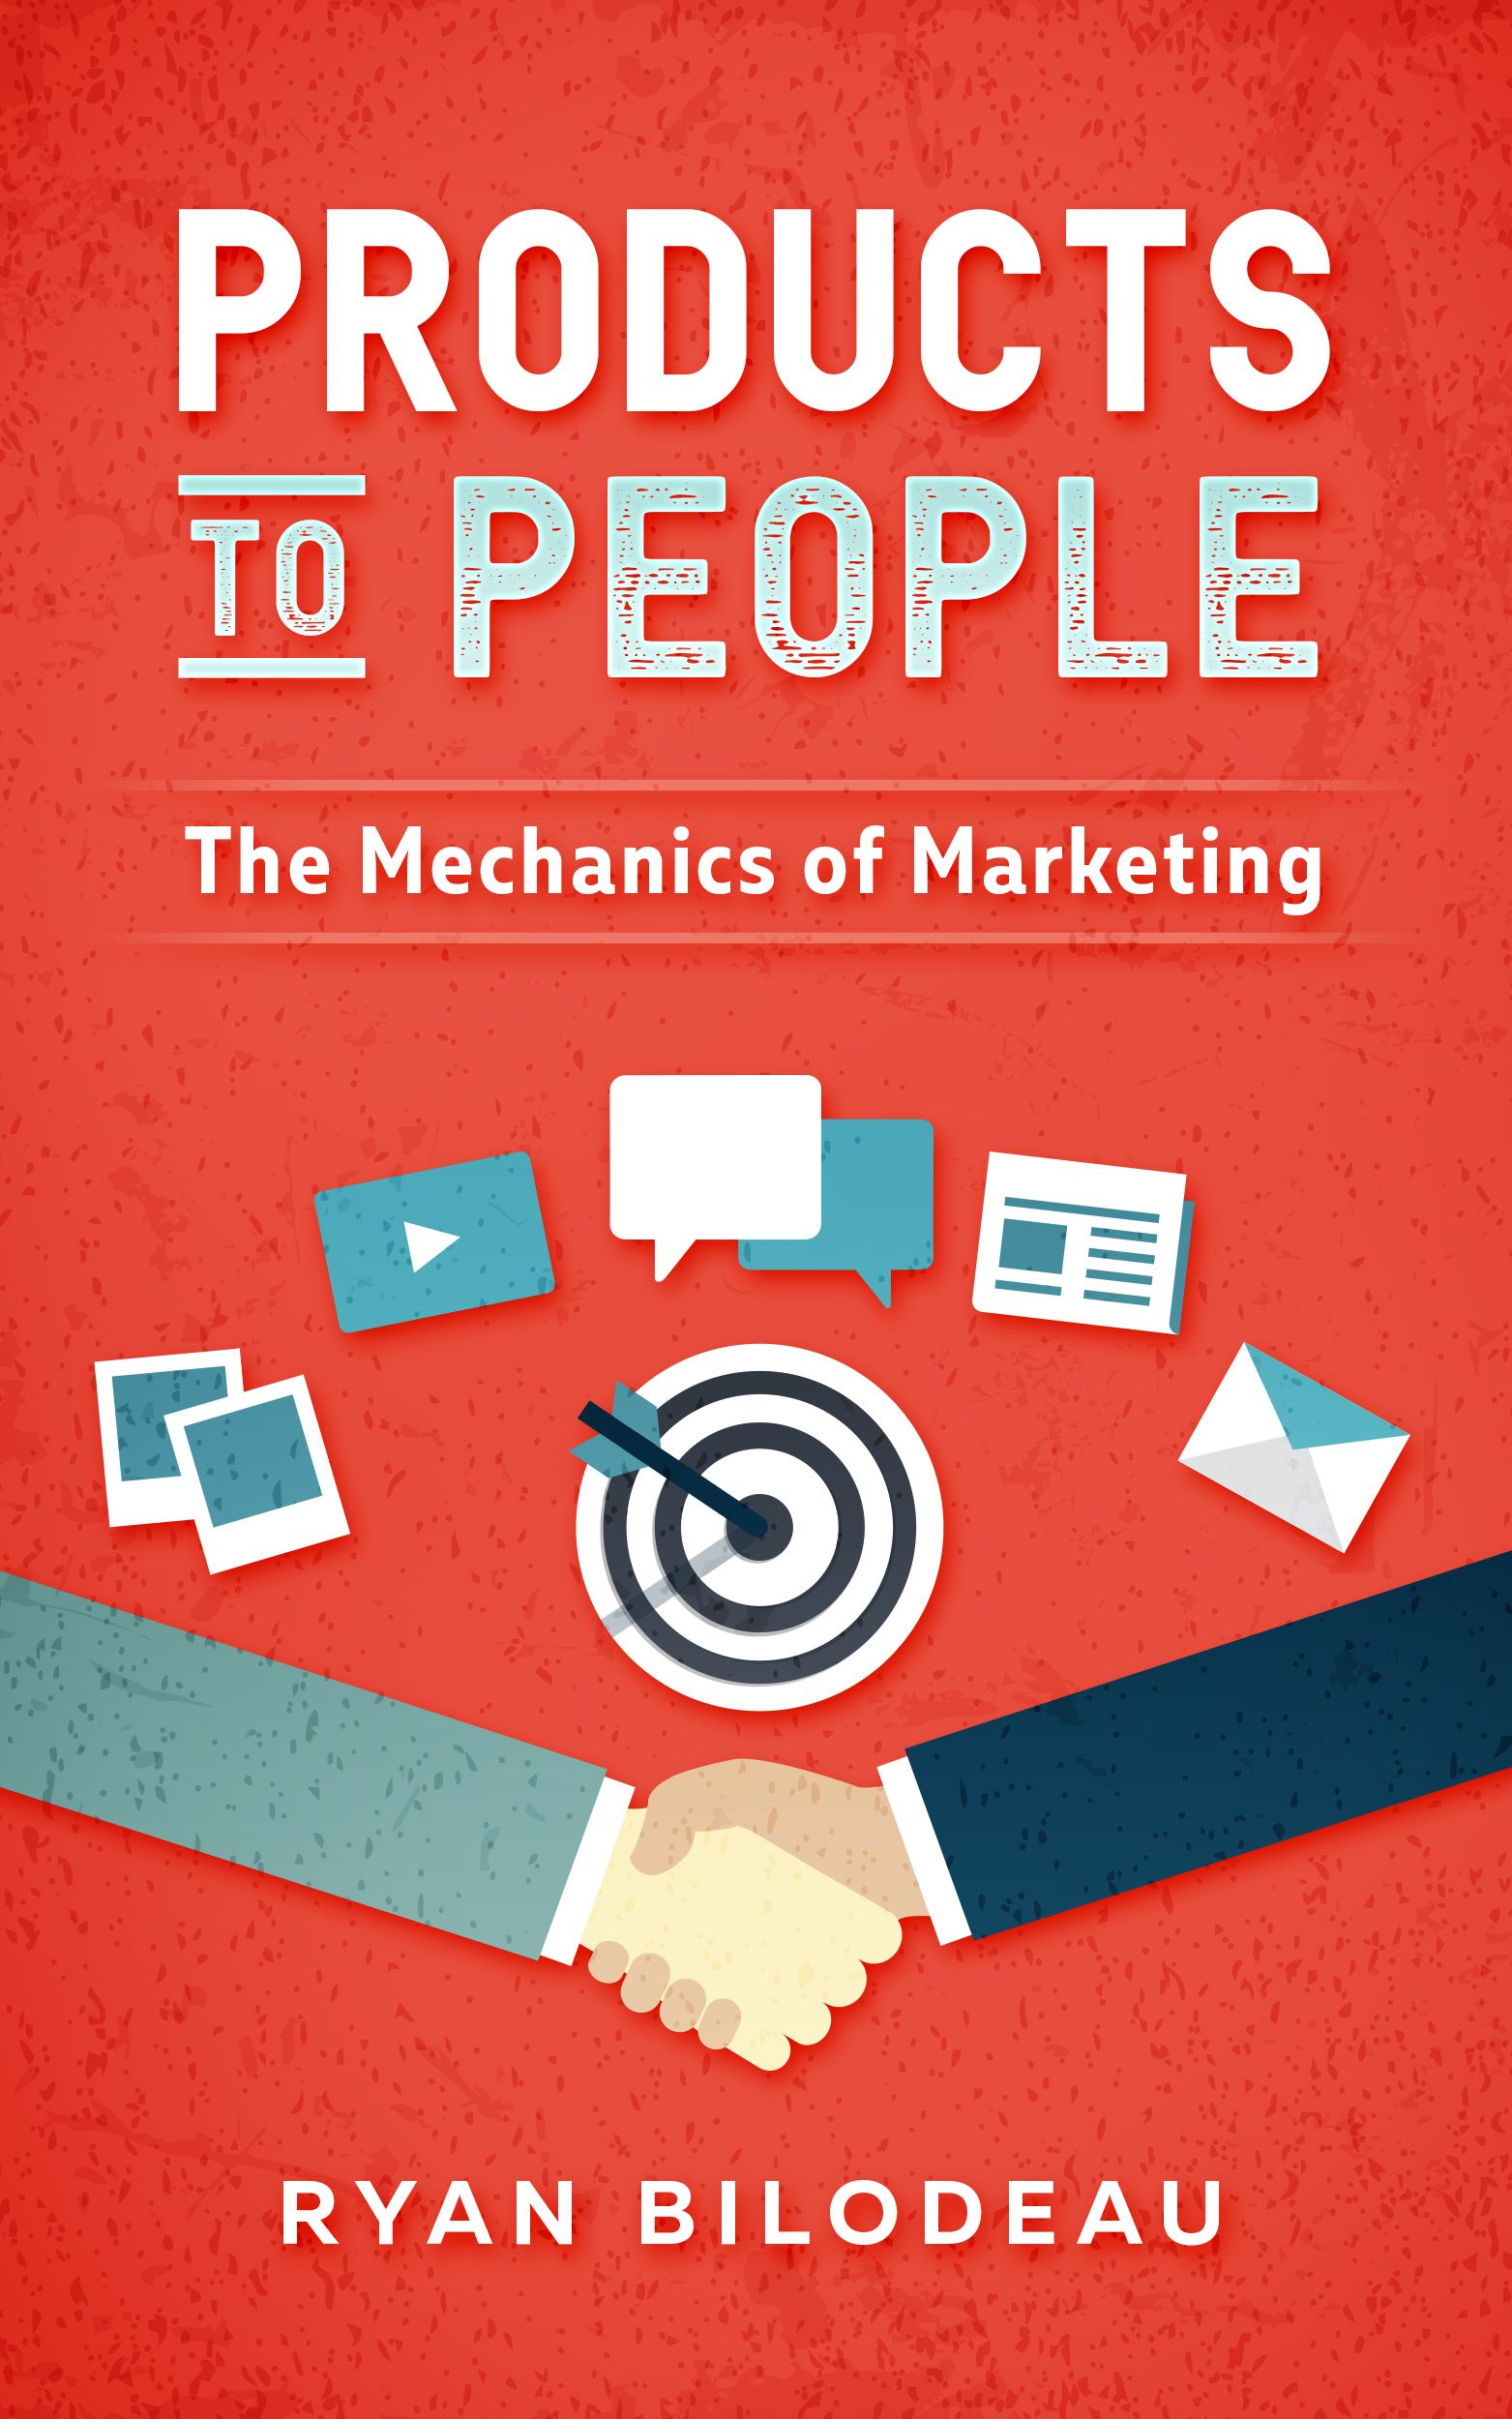 Products to People Marketing Book by Ryan Bilodeau Released